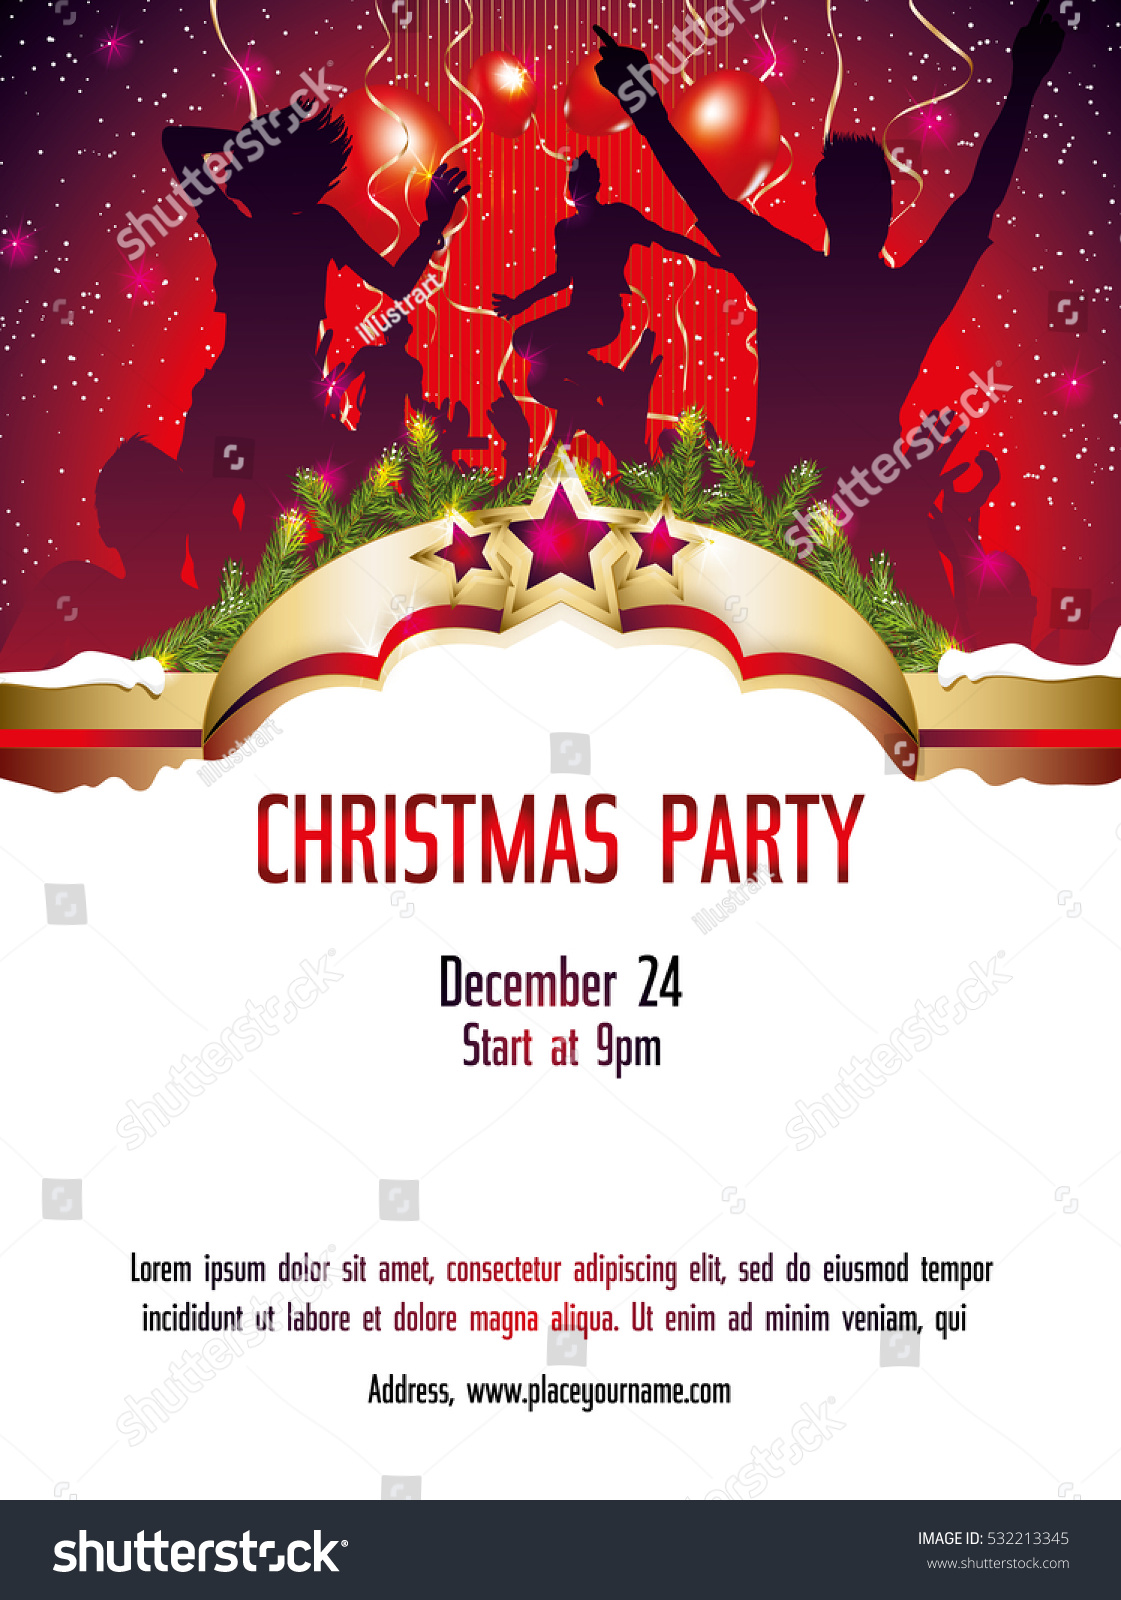 Christmas Party Invitation Template Stock Vector 532213345 ...